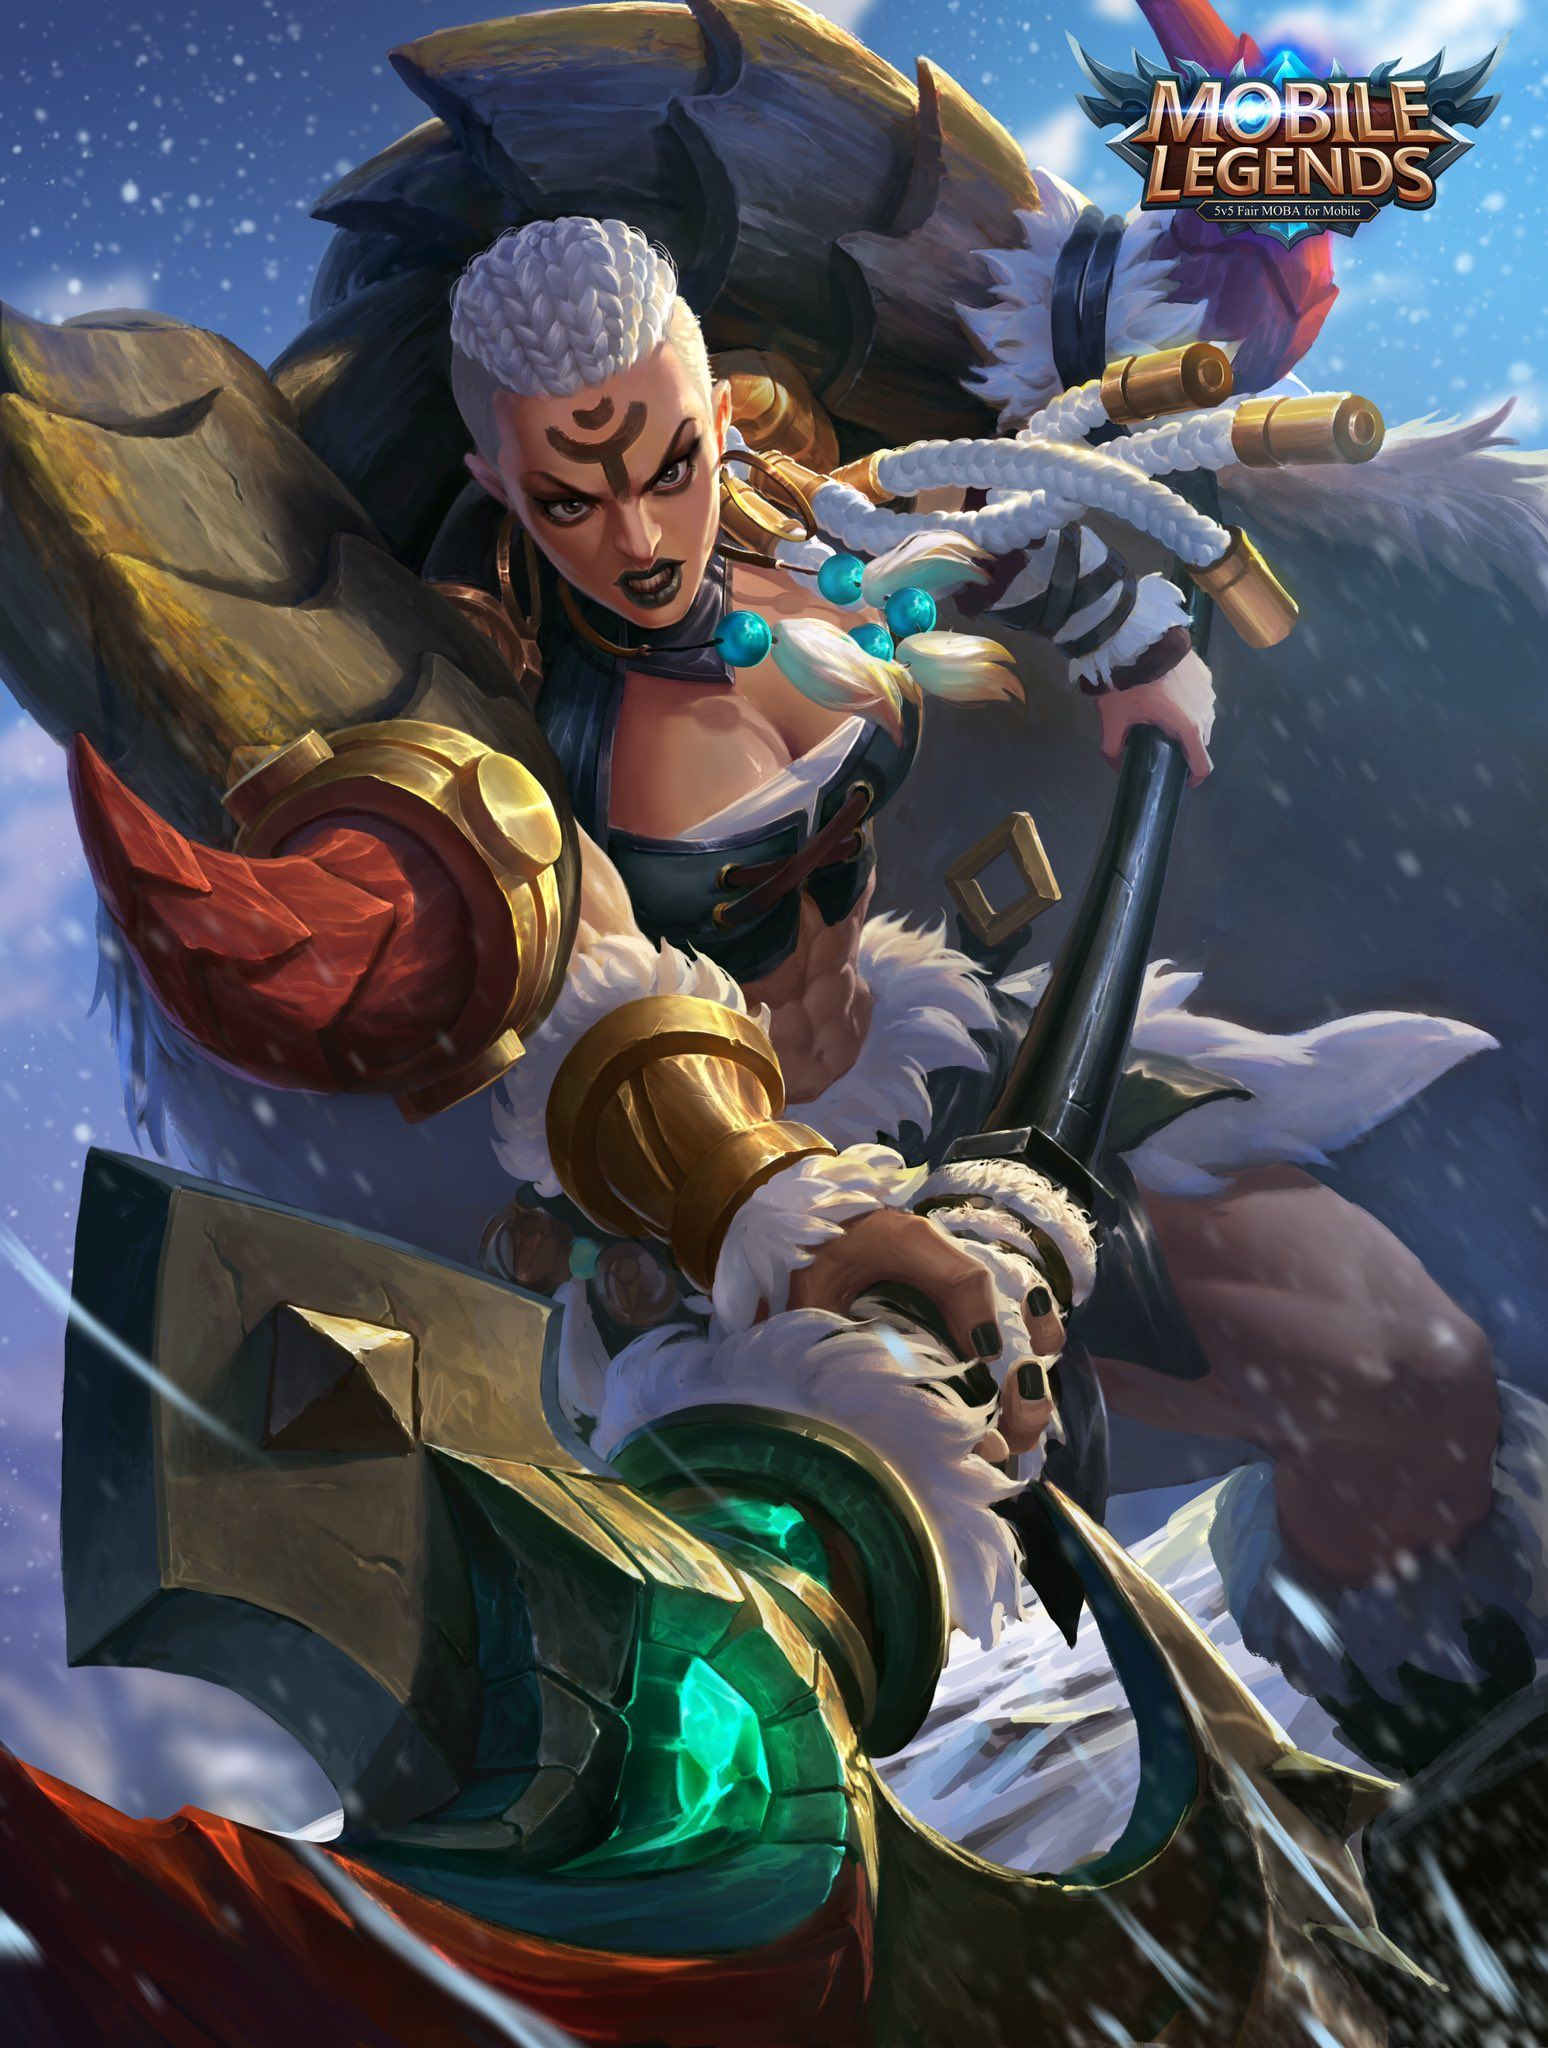 Mobile-Legends-Hilda-Skin-Power-of-Wildness